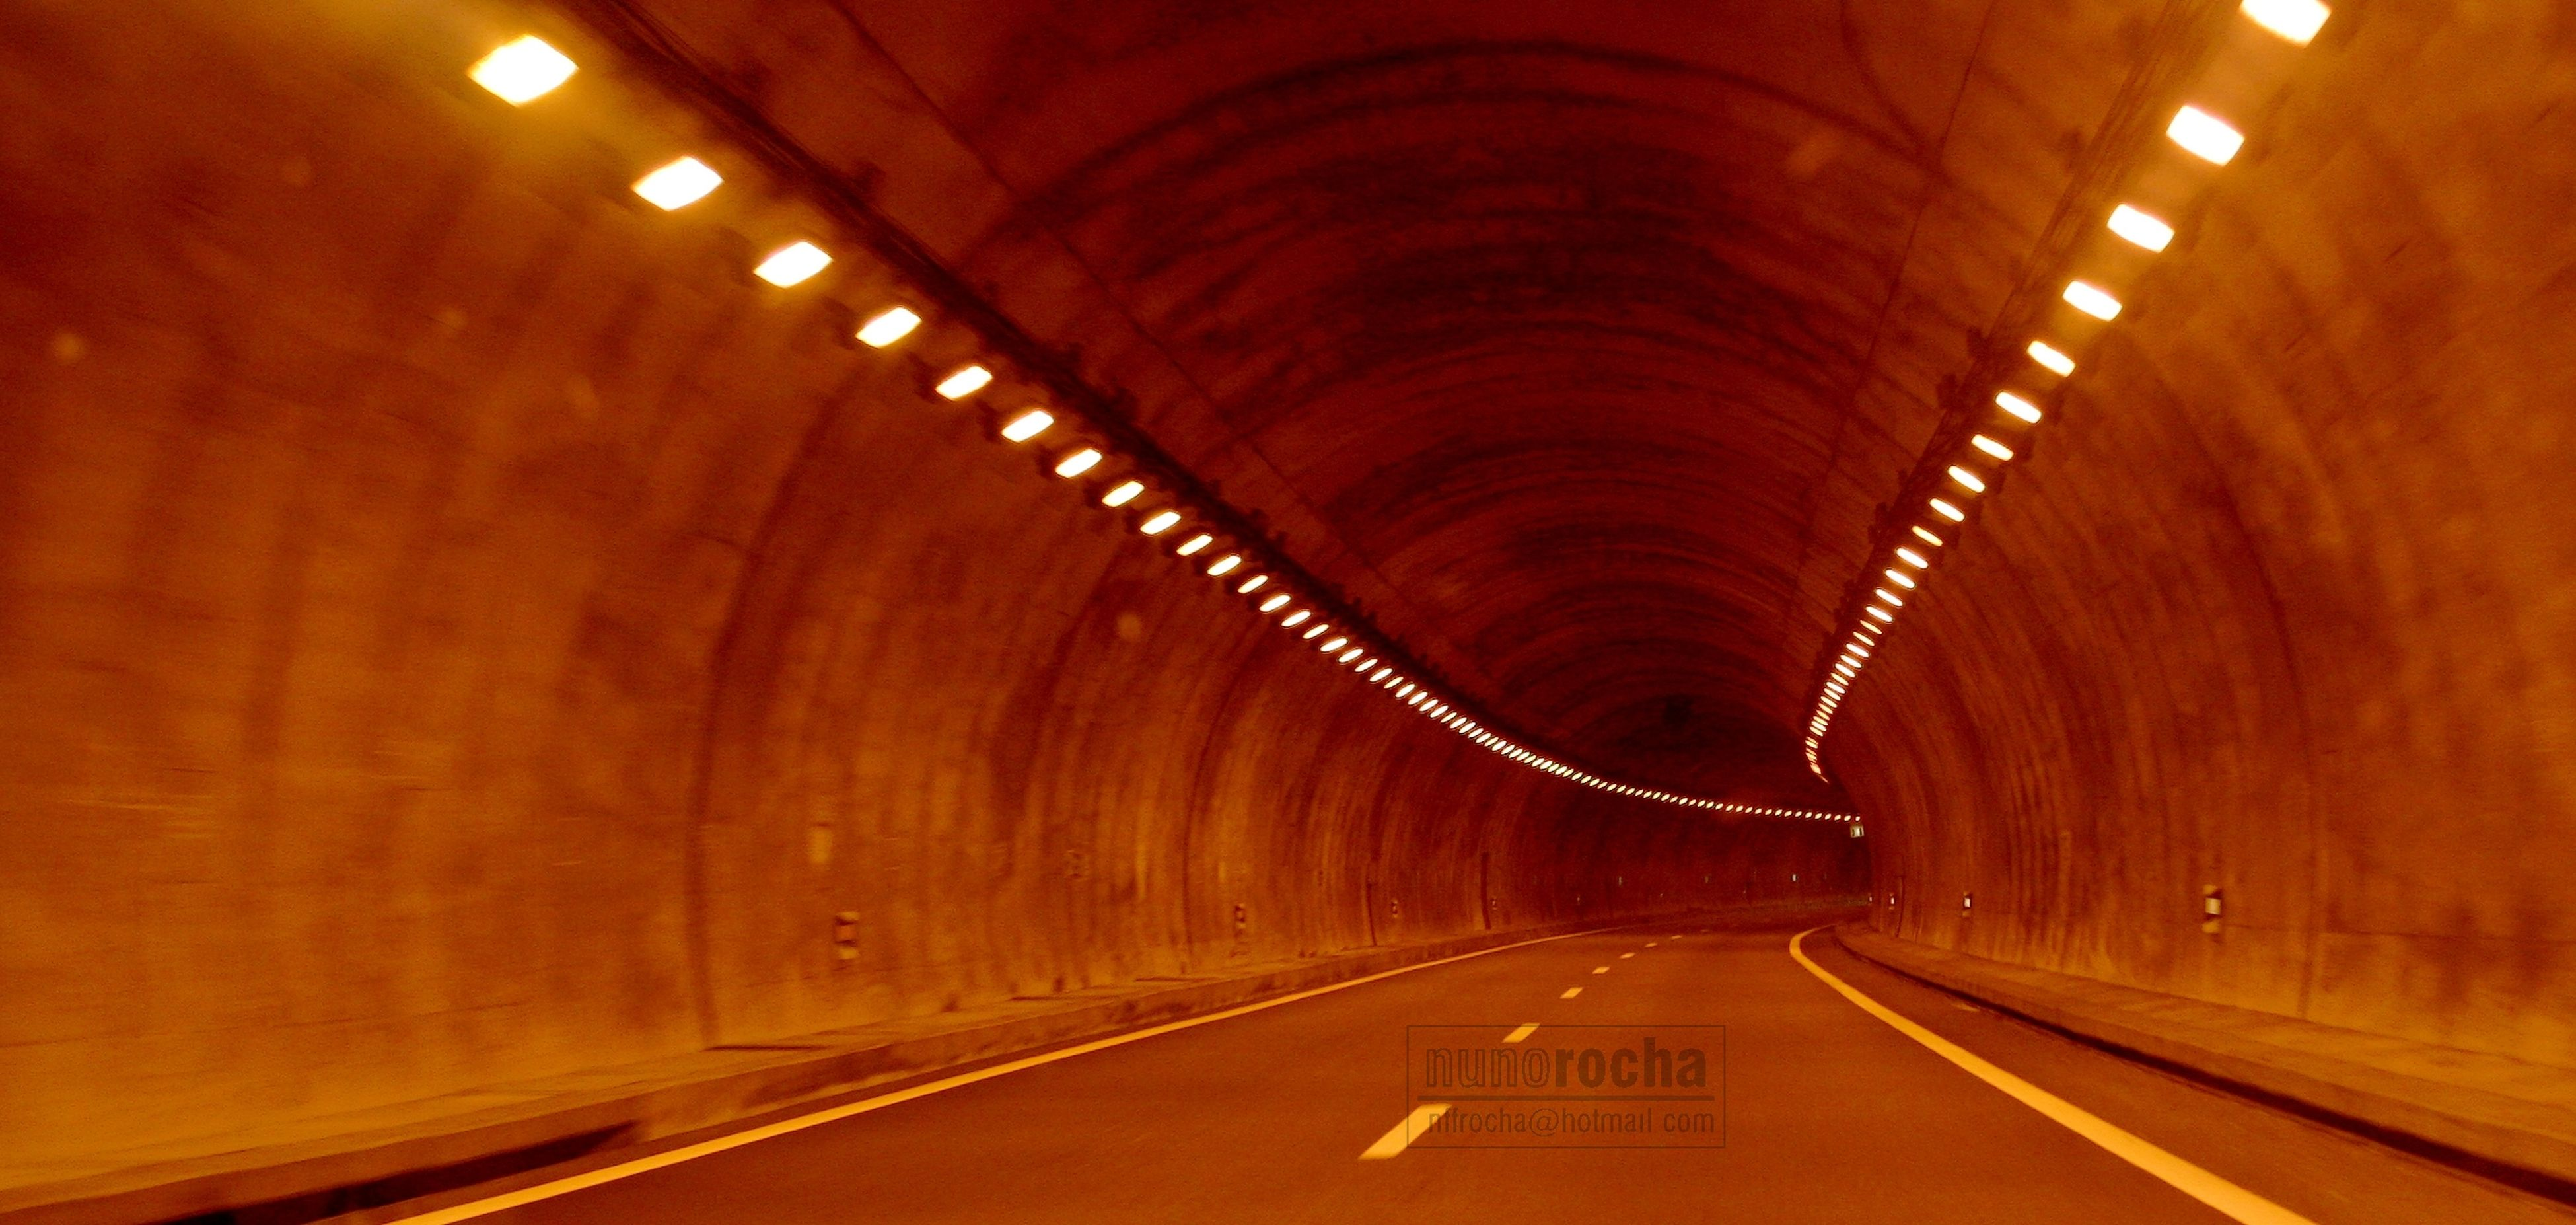 the way forward, tunnel, illuminated, indoors, transportation, diminishing perspective, vanishing point, ceiling, arch, lighting equipment, architecture, built structure, road, empty, underground, night, connection, curve, light at the end of the tunnel, subway